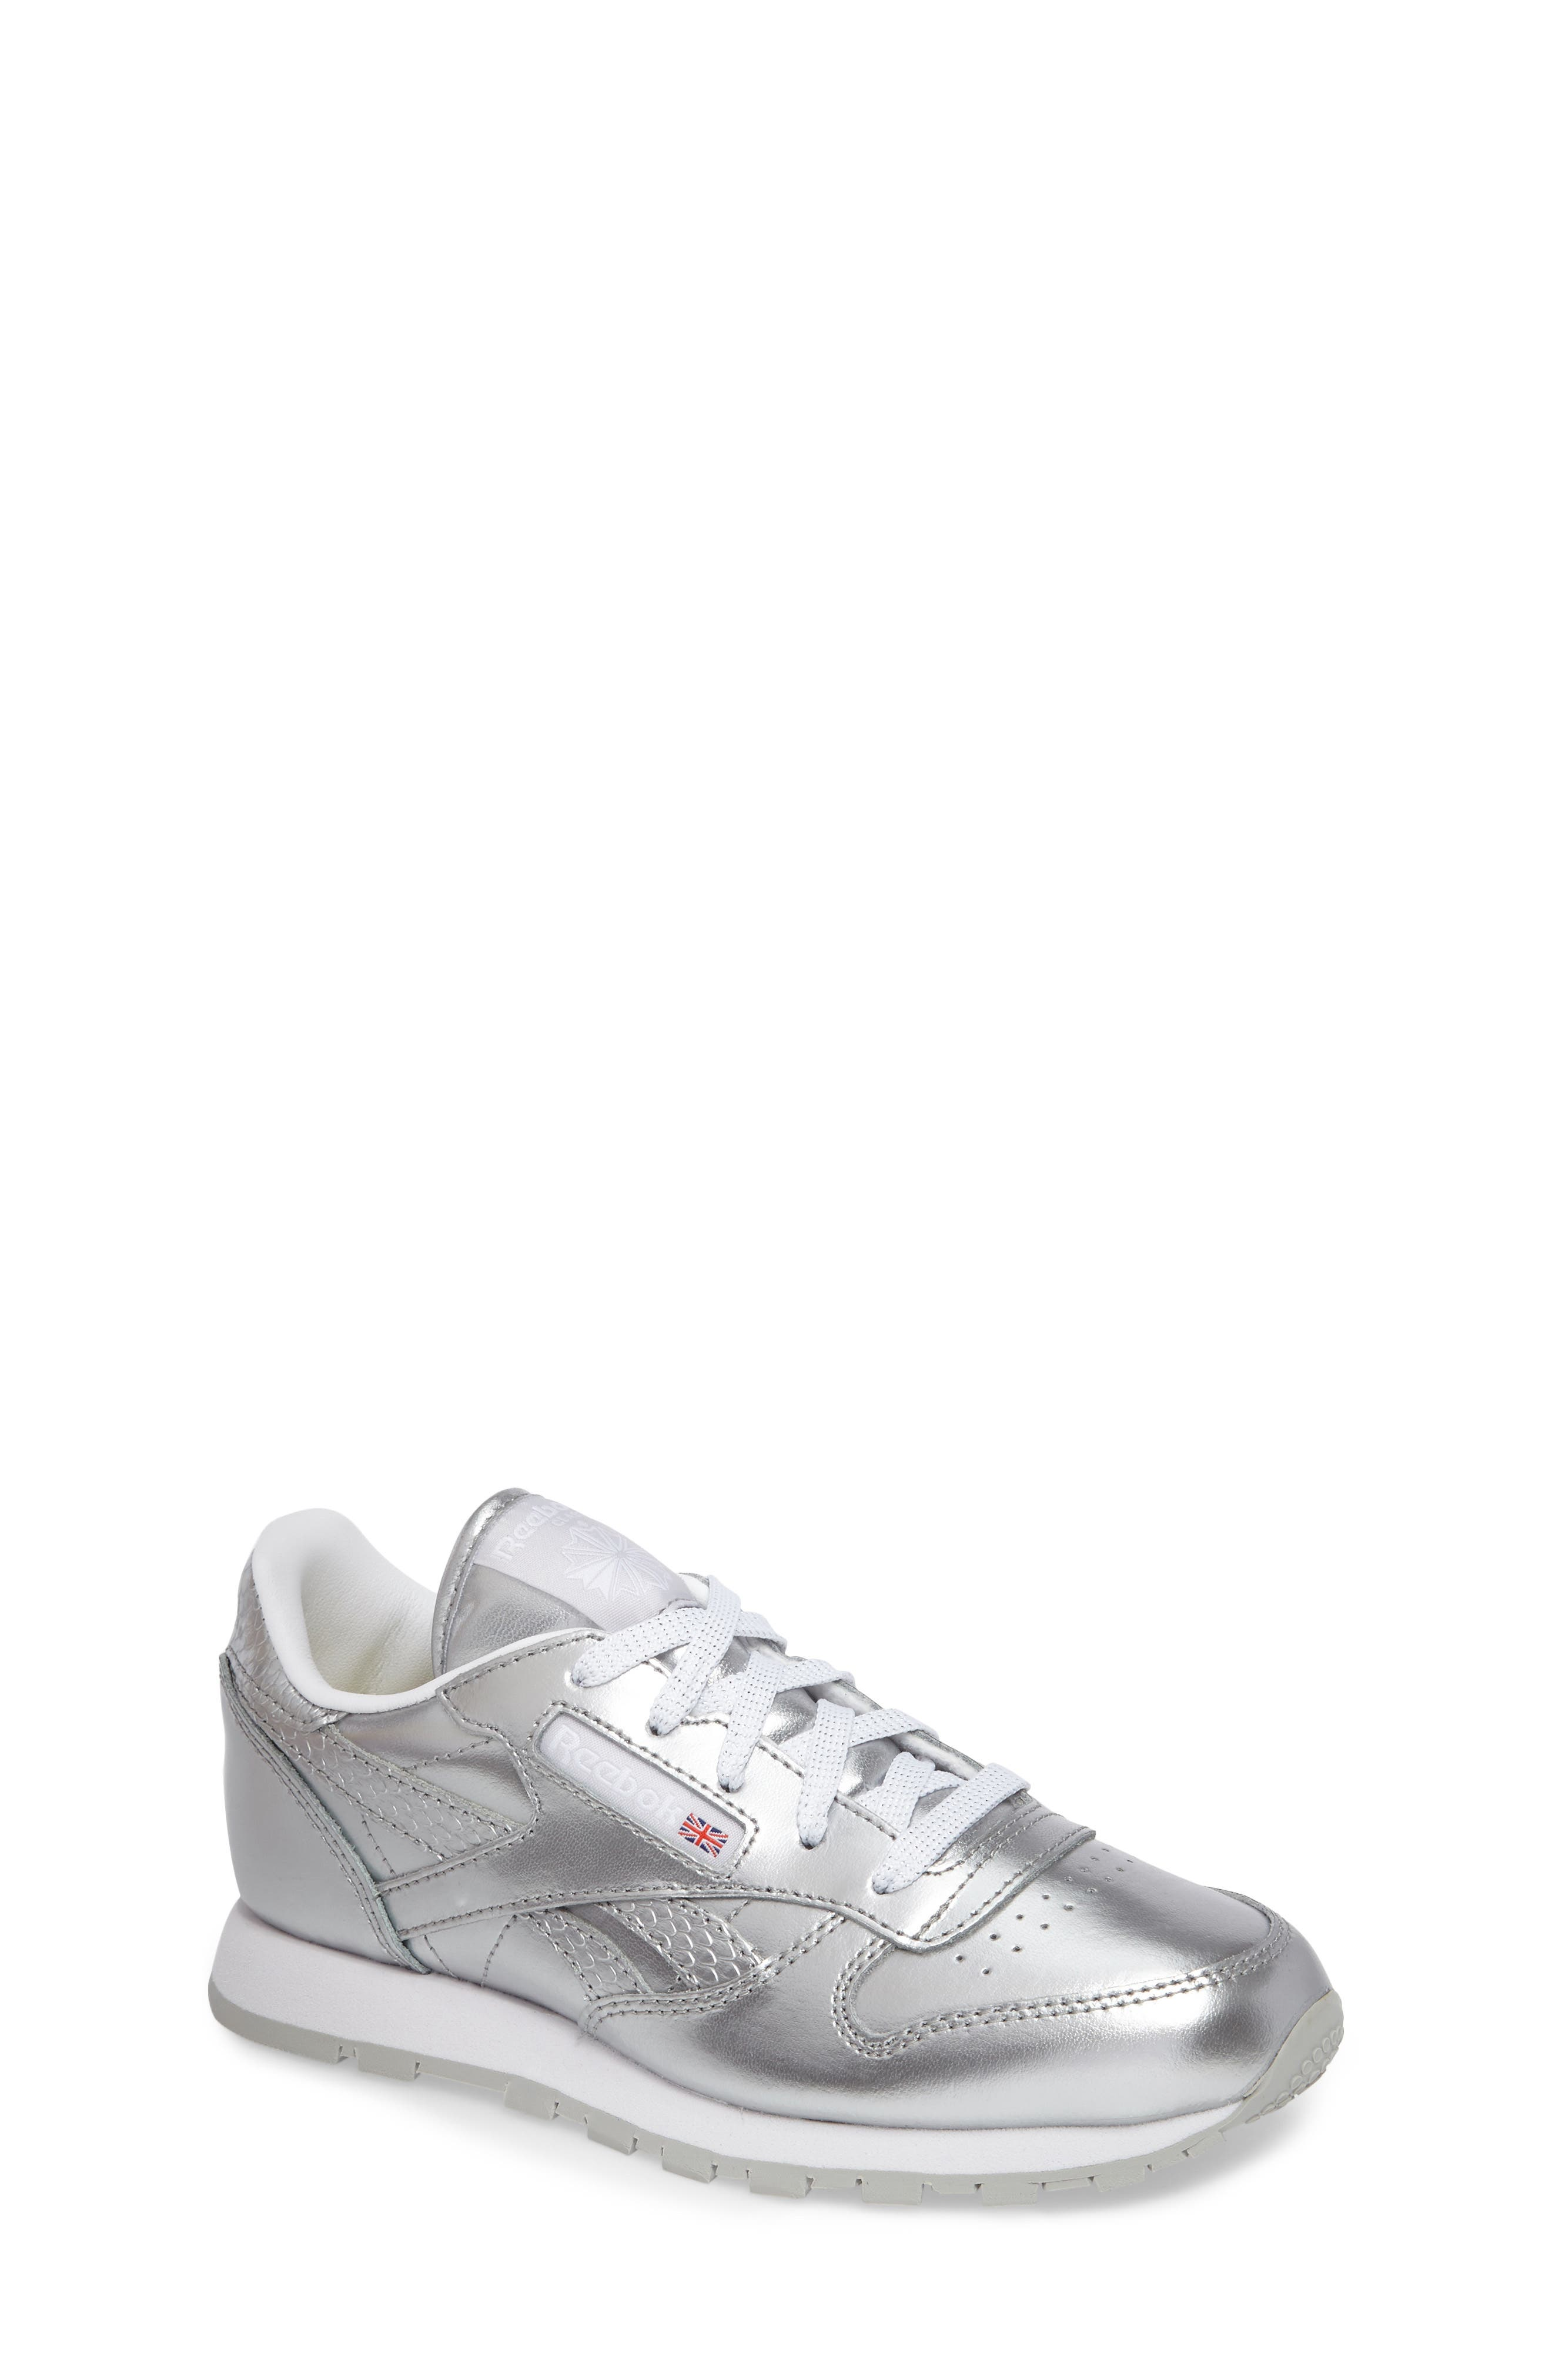 Reebok Classic Metallic Sneaker (Baby, Walker, Toddler, Little Kid & Big Kid)